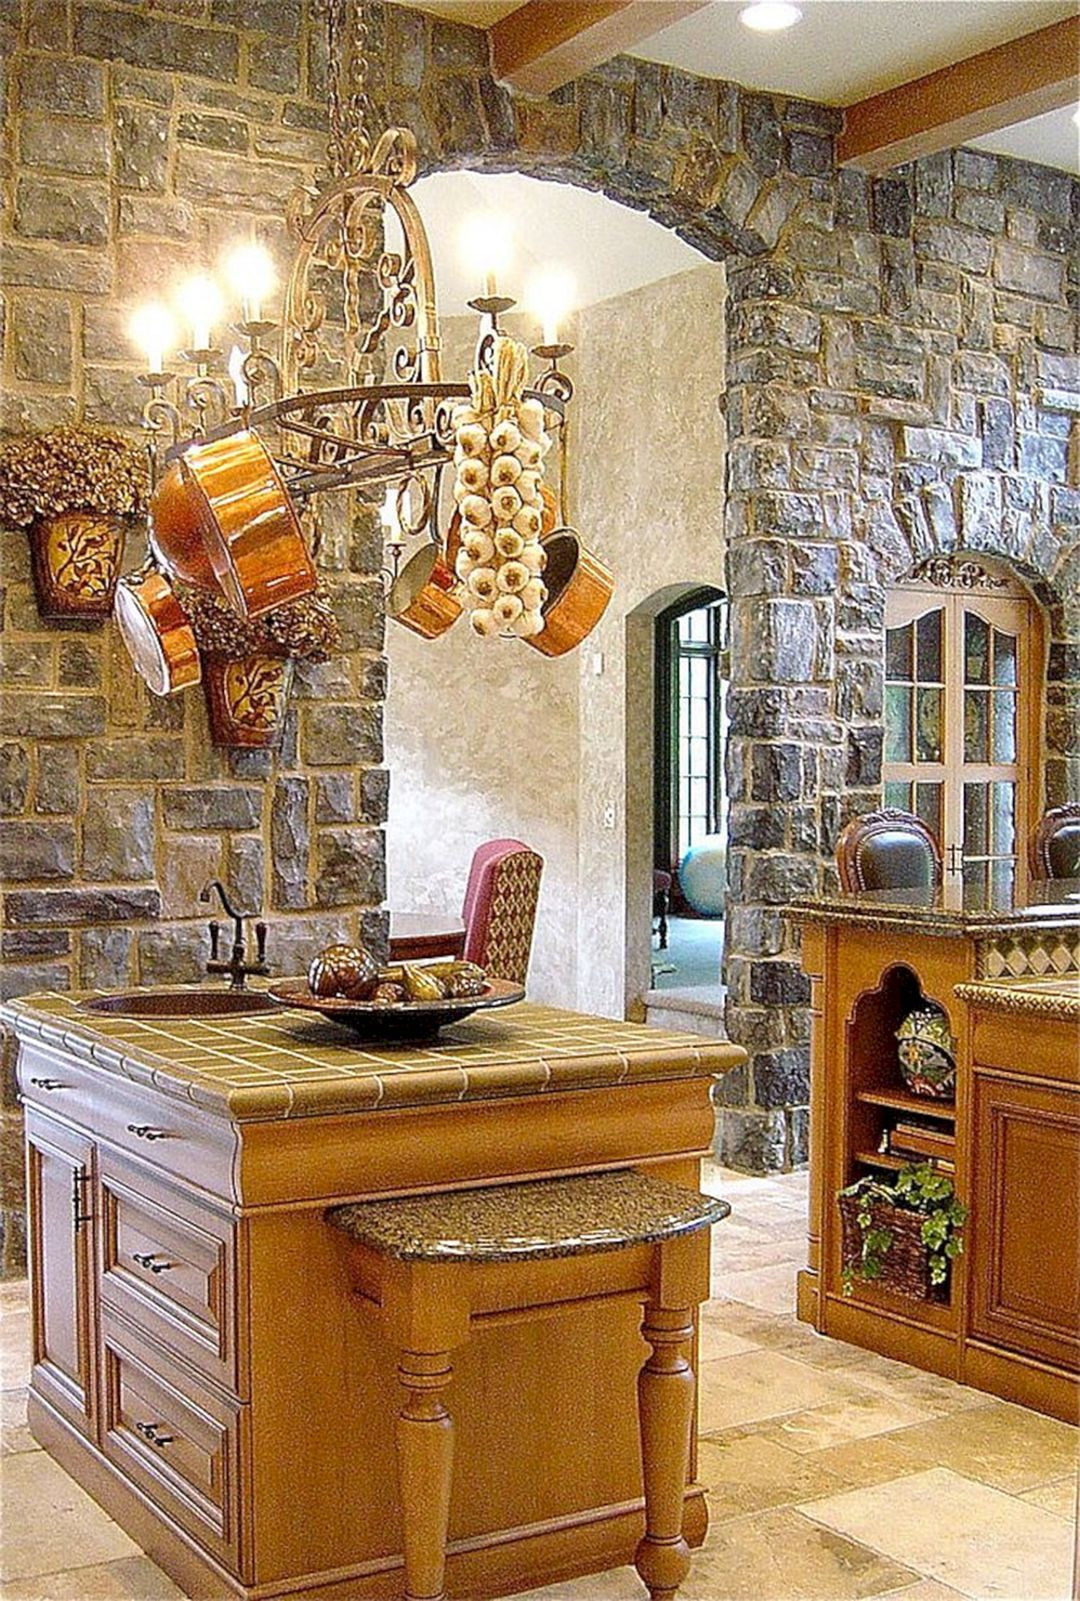 25 Extraordinary Rock Wall Design Ideas For Beautiful Kitchen